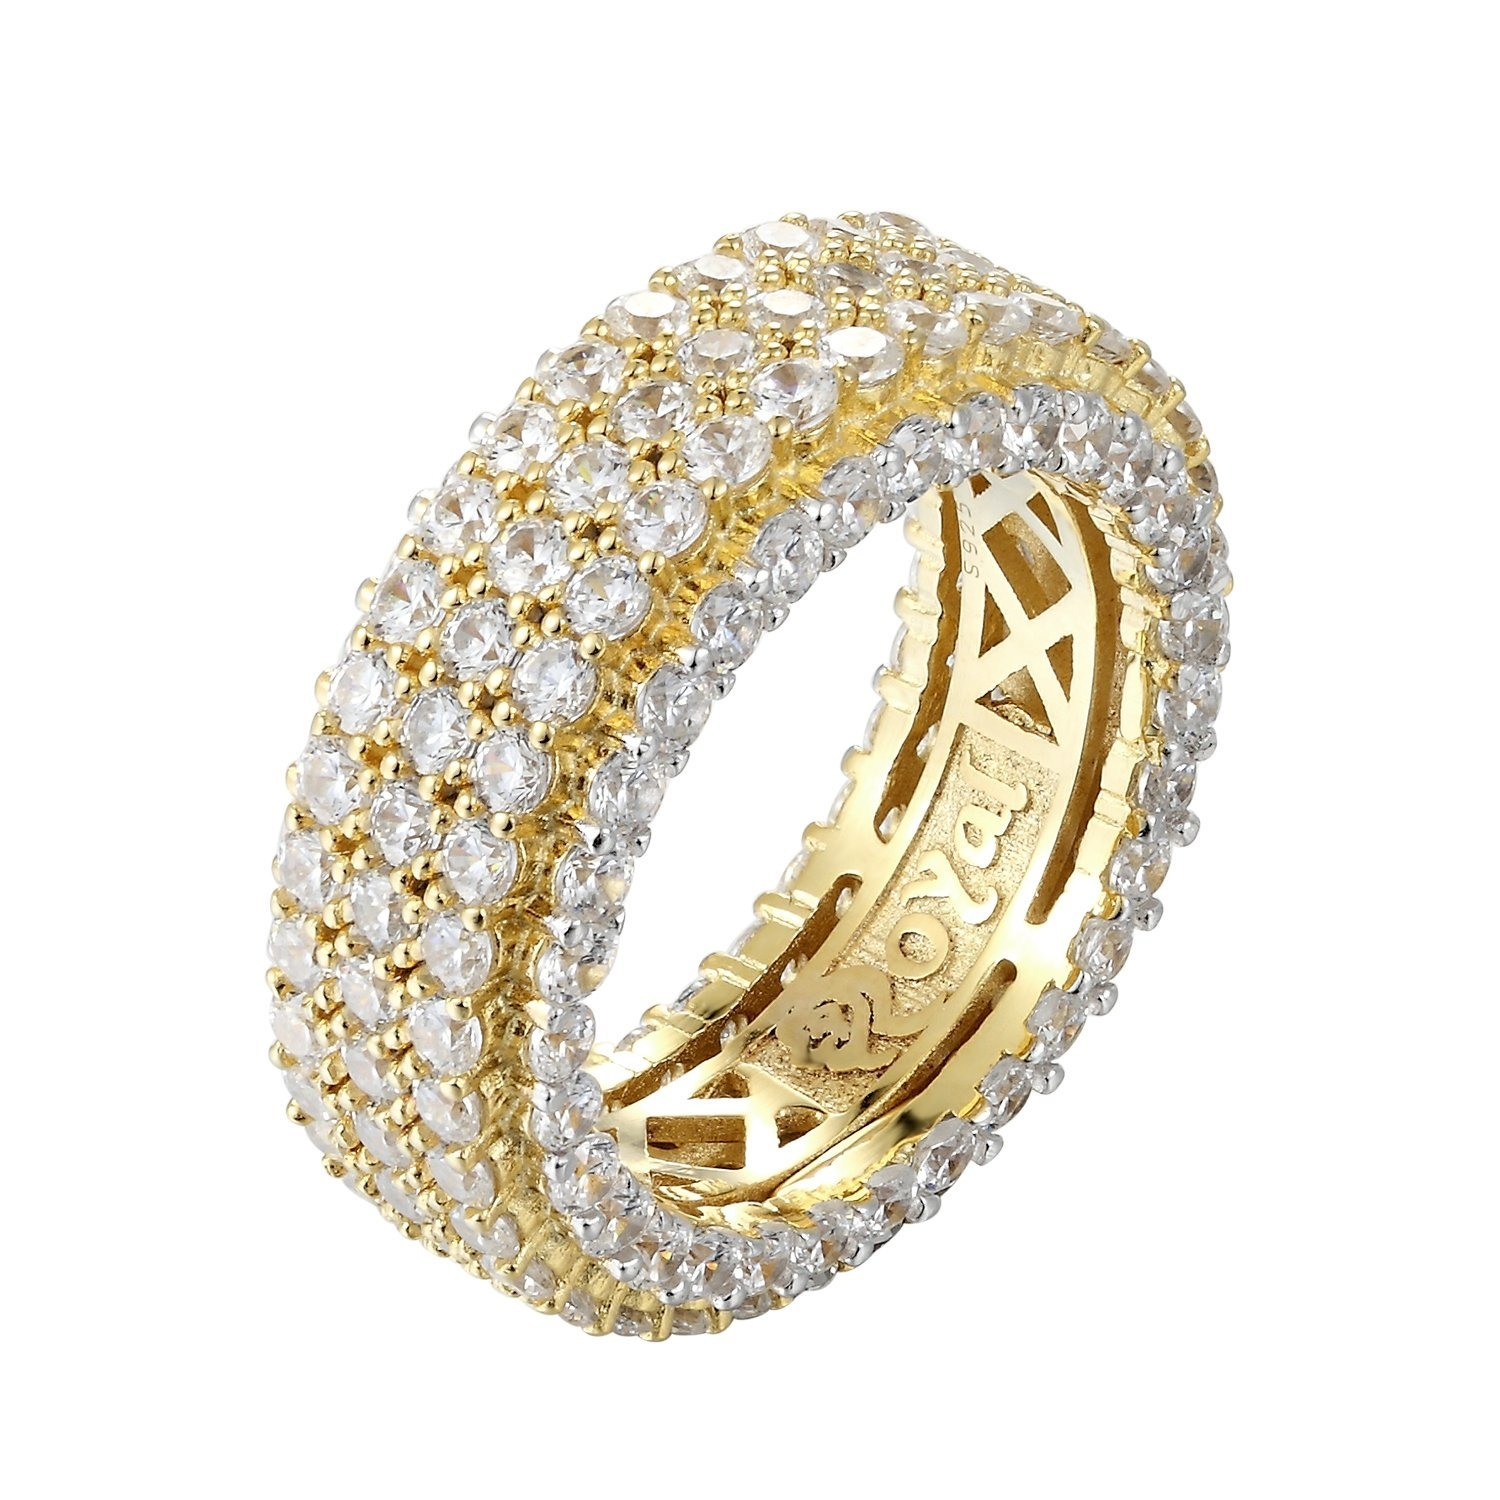 Image of 14k Gold Finish 3 Row Band Icy Men's Sterling Silver Band